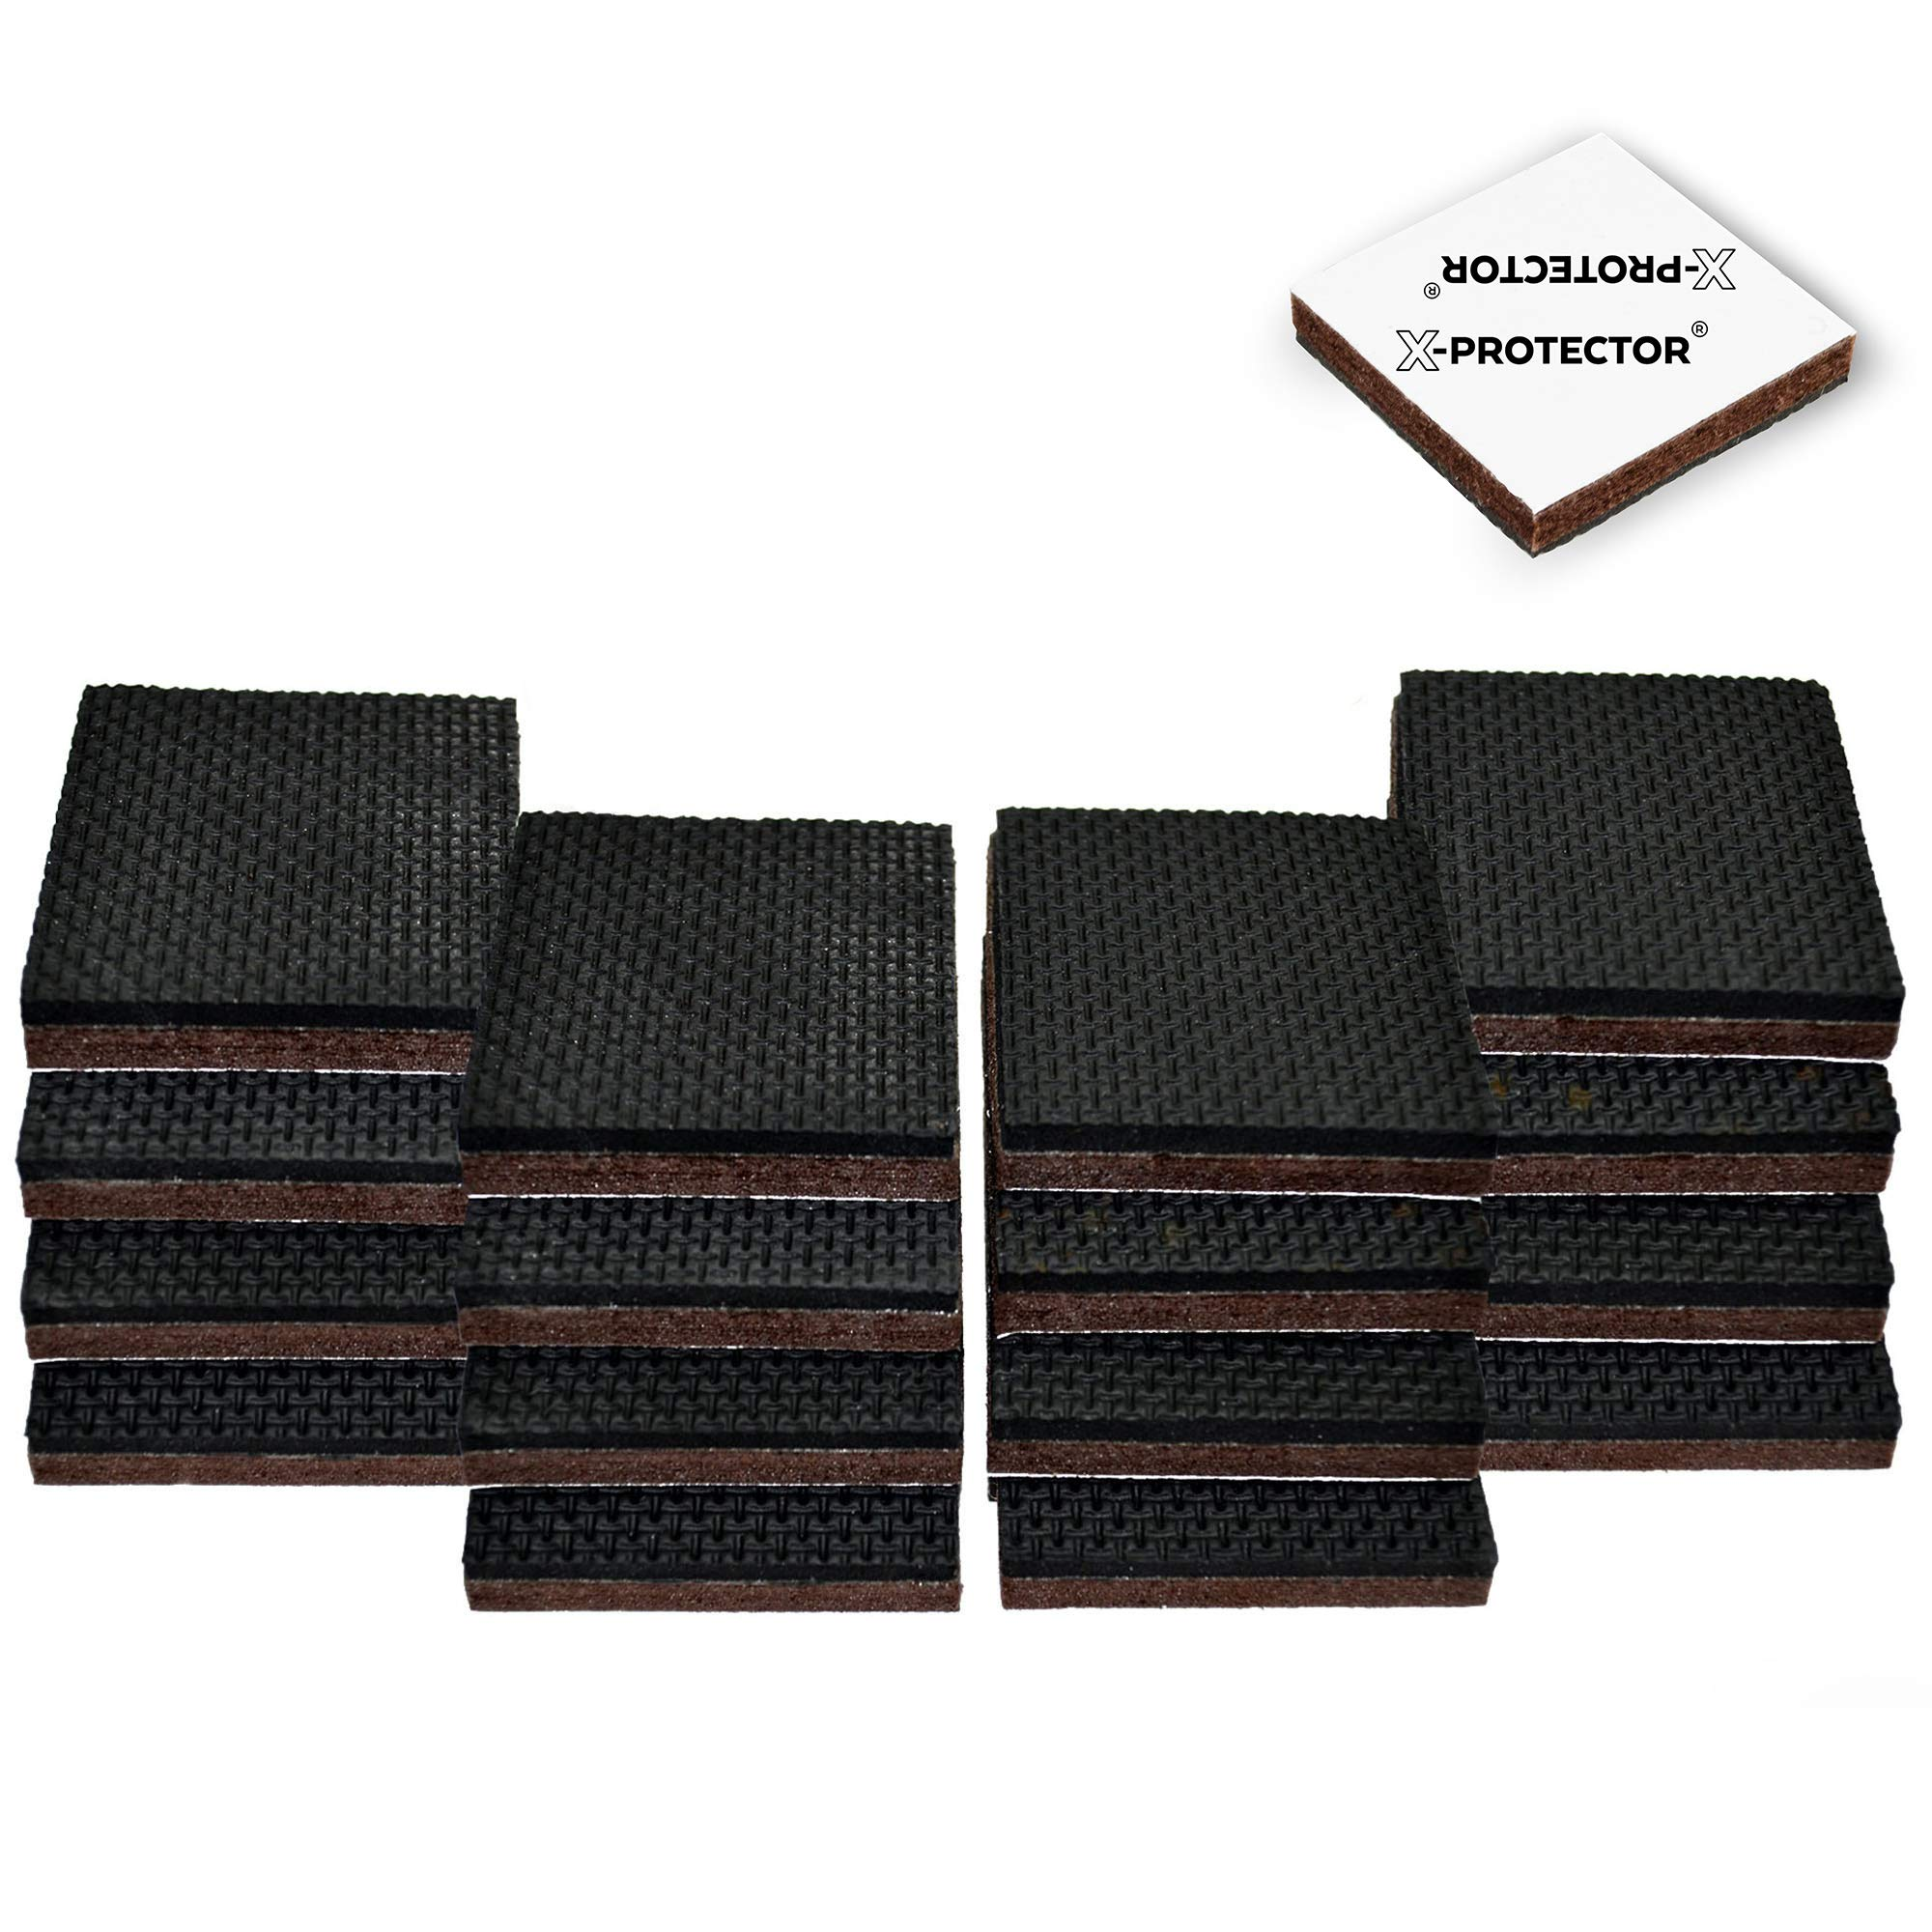 X-Protector Slip Premium 16 pcs 2 Grippers Best SelfAdhesive Rubber Feet – Ideal Non Skid Pad Floor Fix in Place Furniture